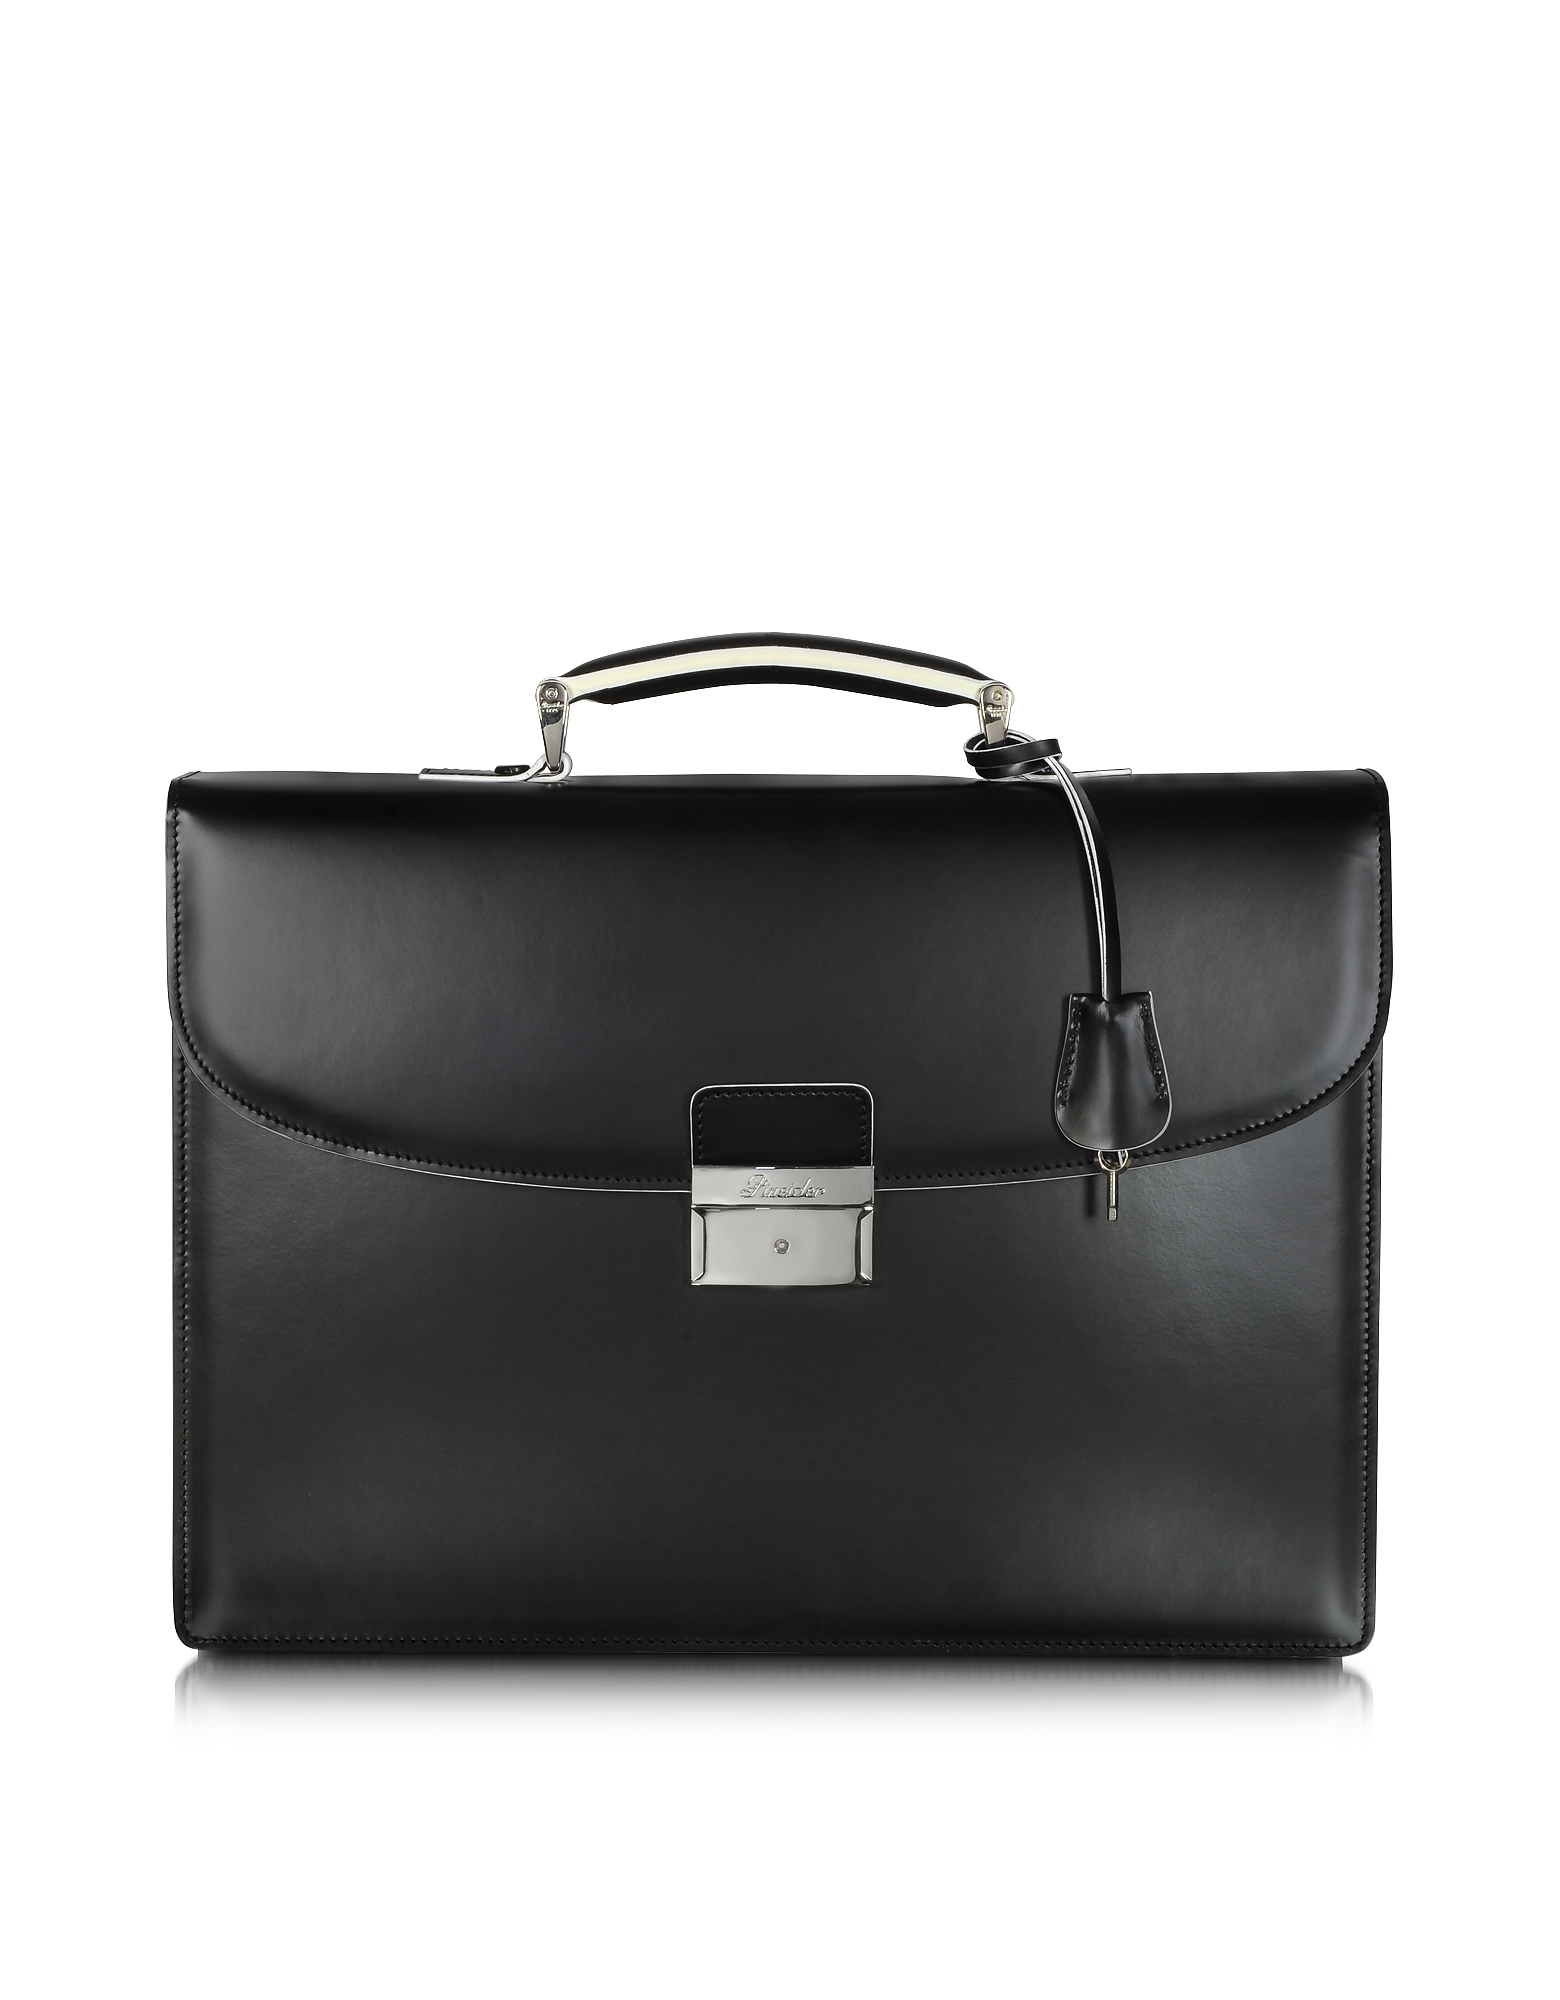 Optical Black and White Leather Briefcase